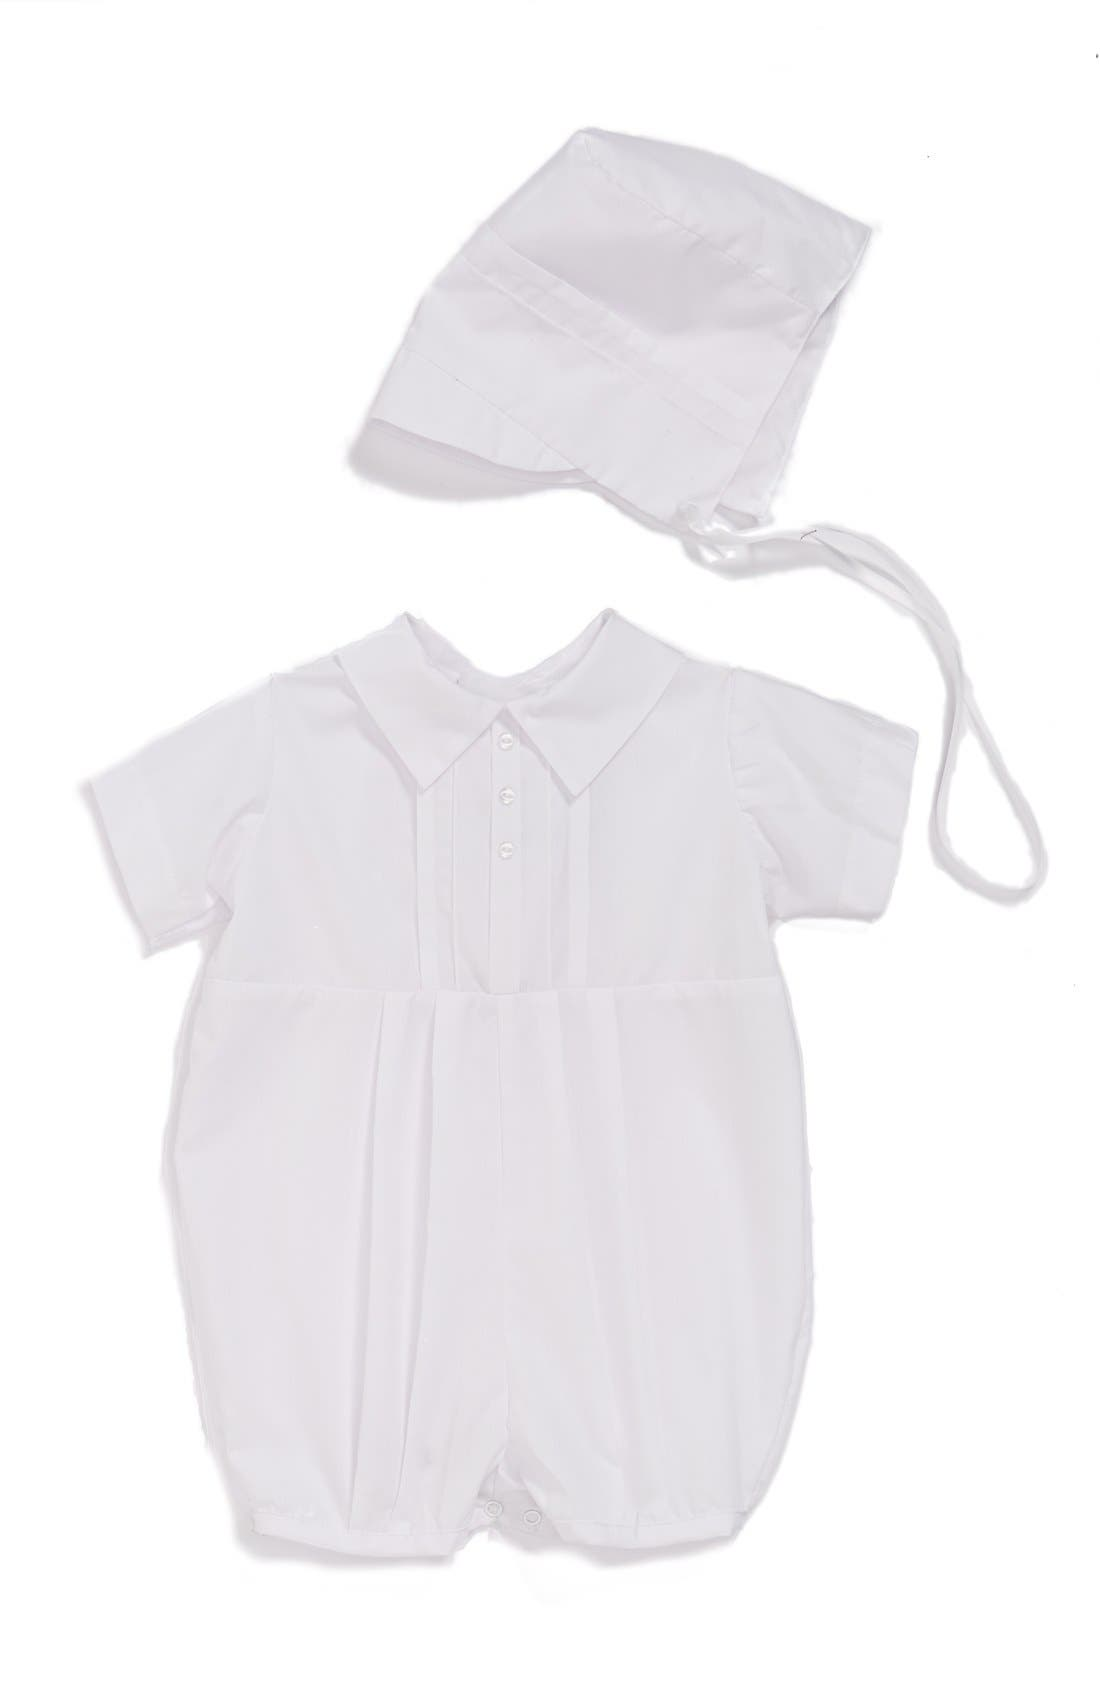 Main Image - Little Things Mean a Lot Christening Romper & Hat Set (Baby)